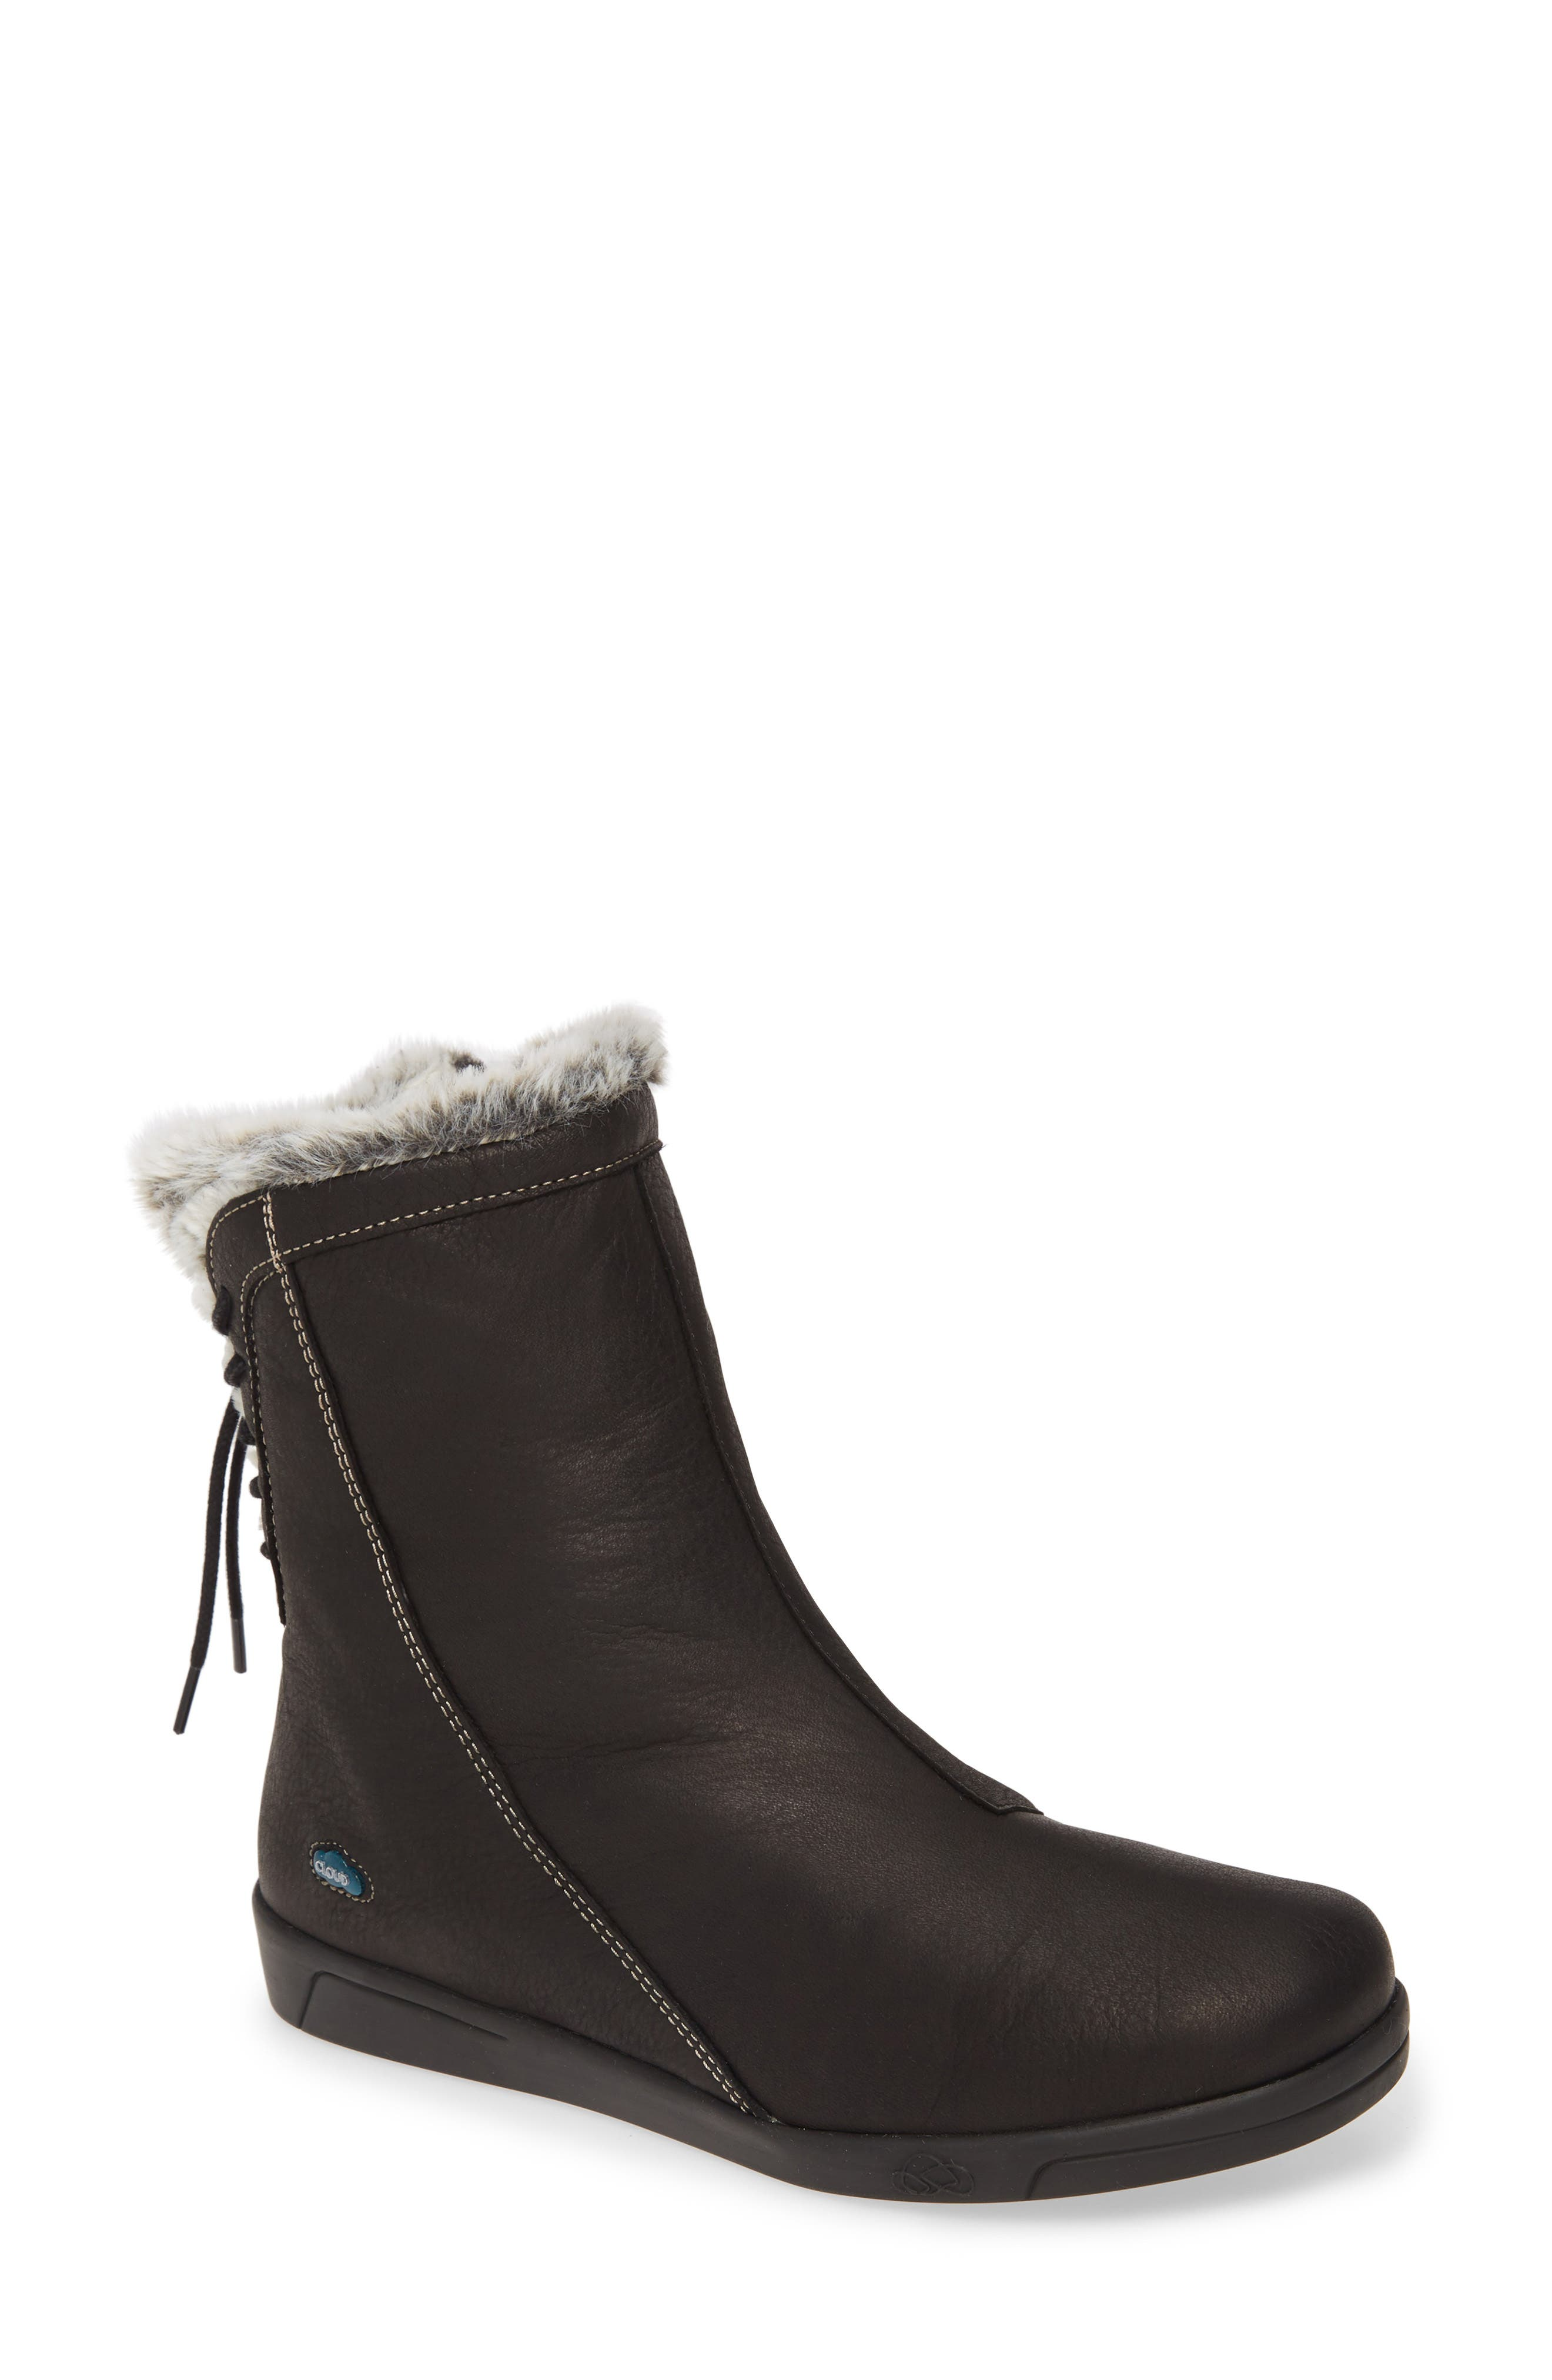 Plush faux fur shows at the topline and through the split, lace-up back of a trim bootie styled with contrast topstitching and an angled side-zip closure. Style Name: Cloud Aryana Faux Fur & Wool Lined Boot (Women). Style Number: 5936464. Available in stores.